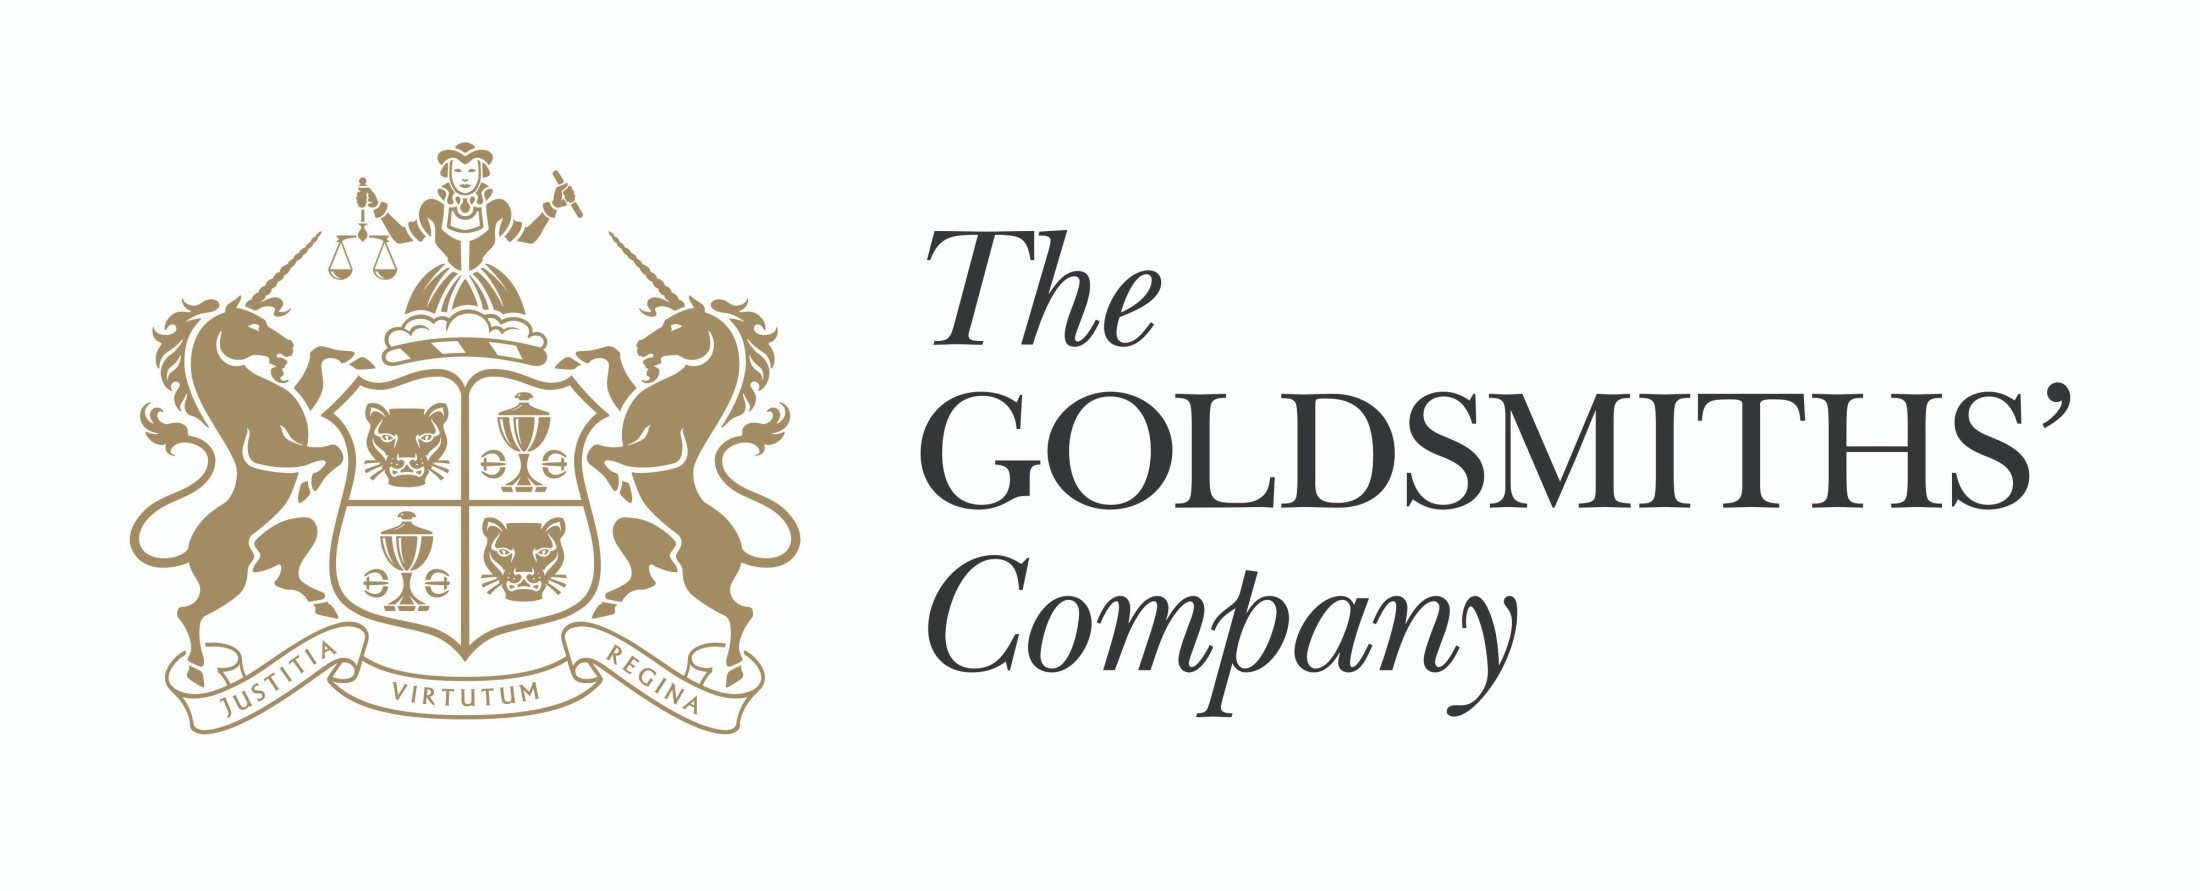 The Goldsmiths Company Charity